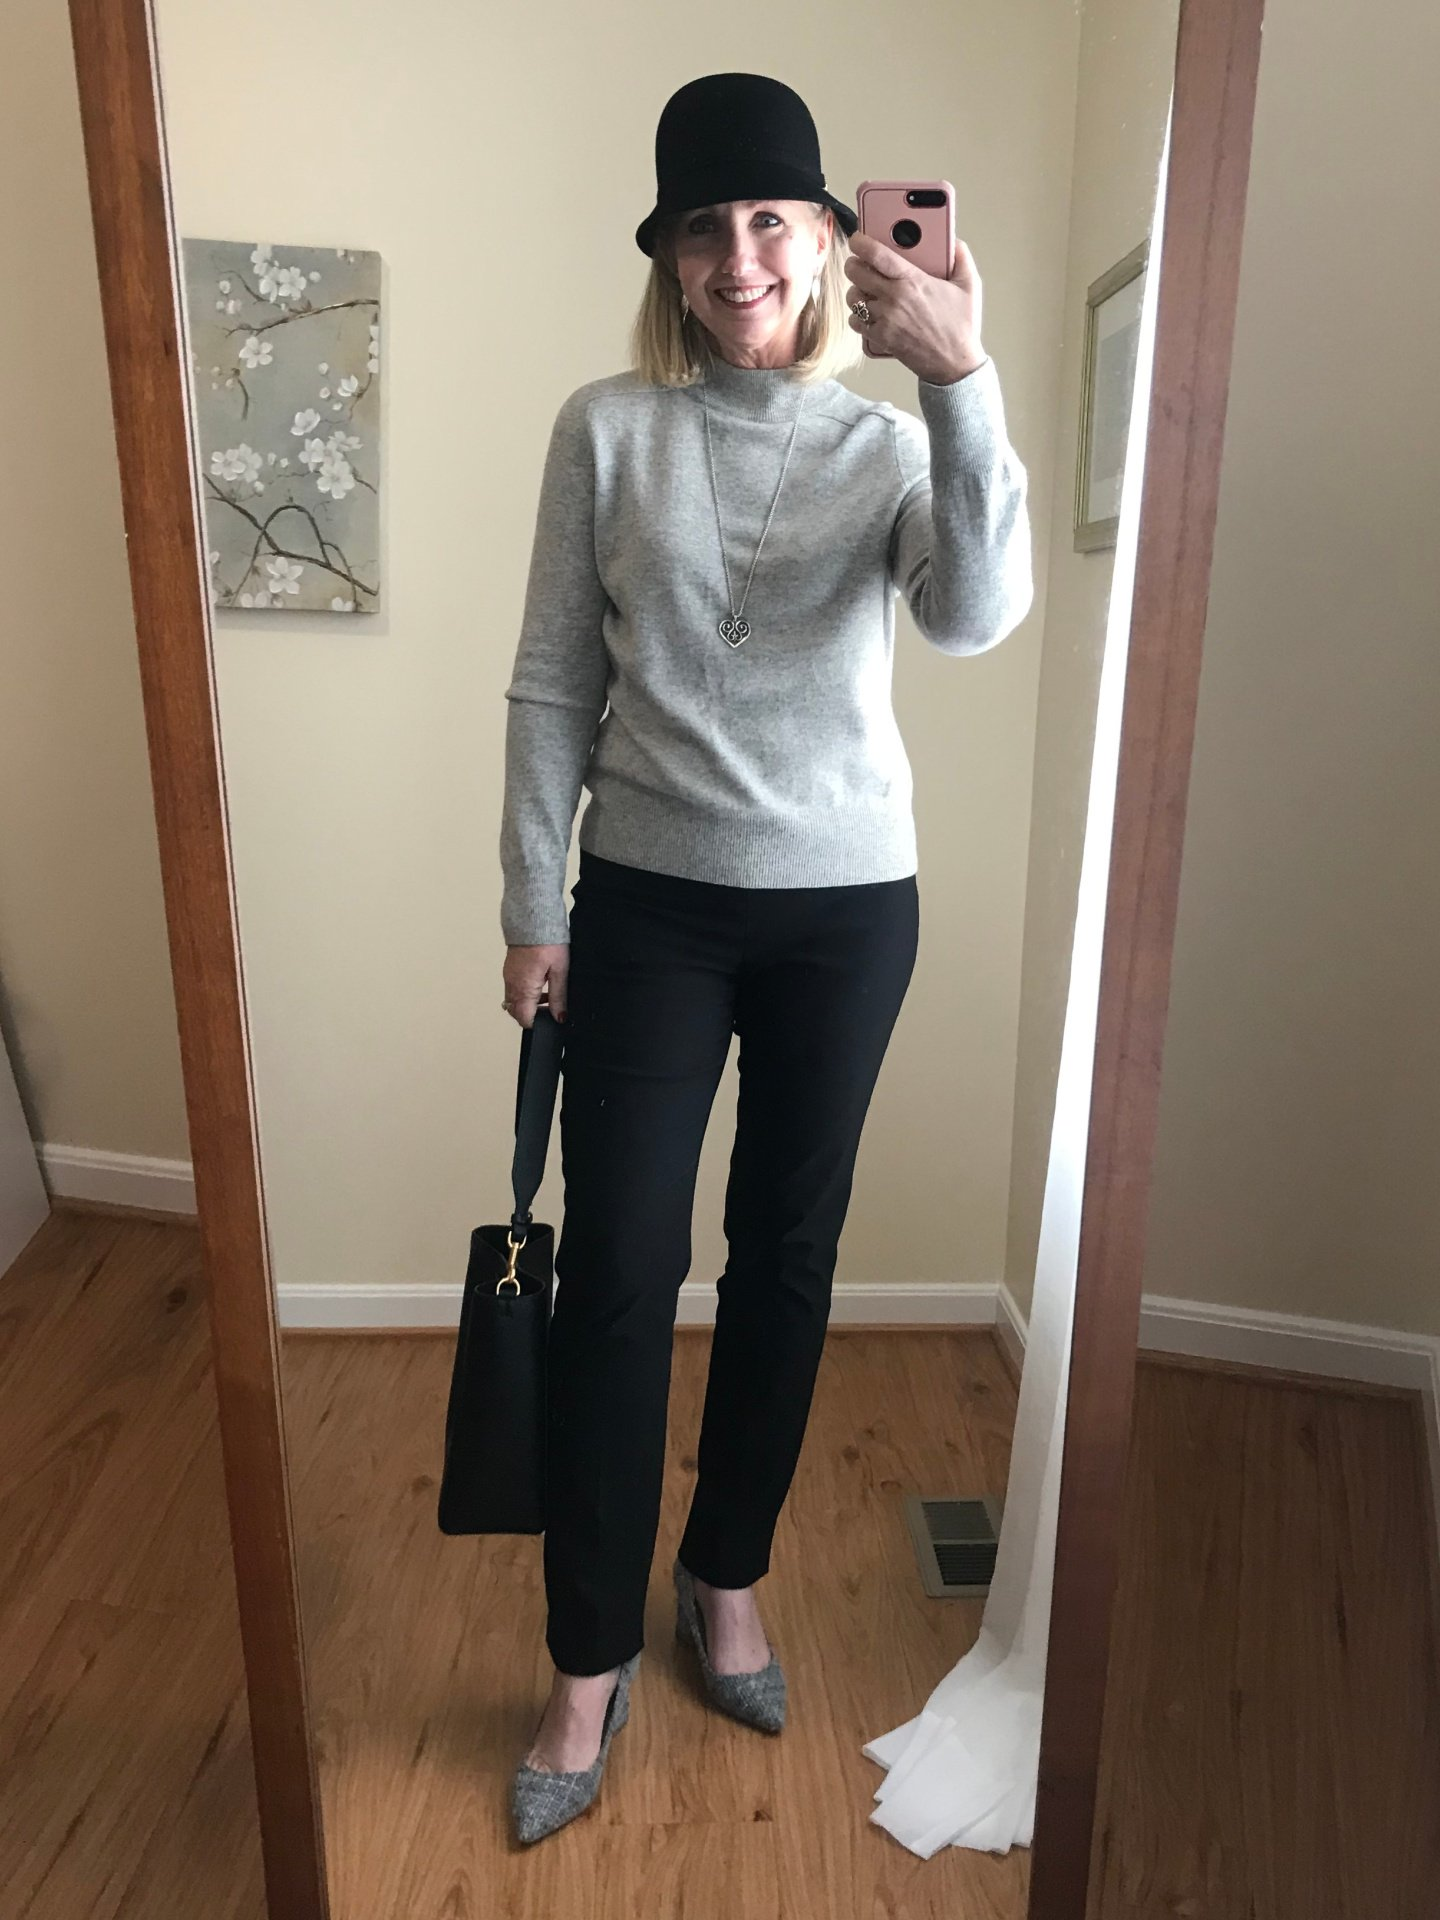 Black pants and light grey sweater